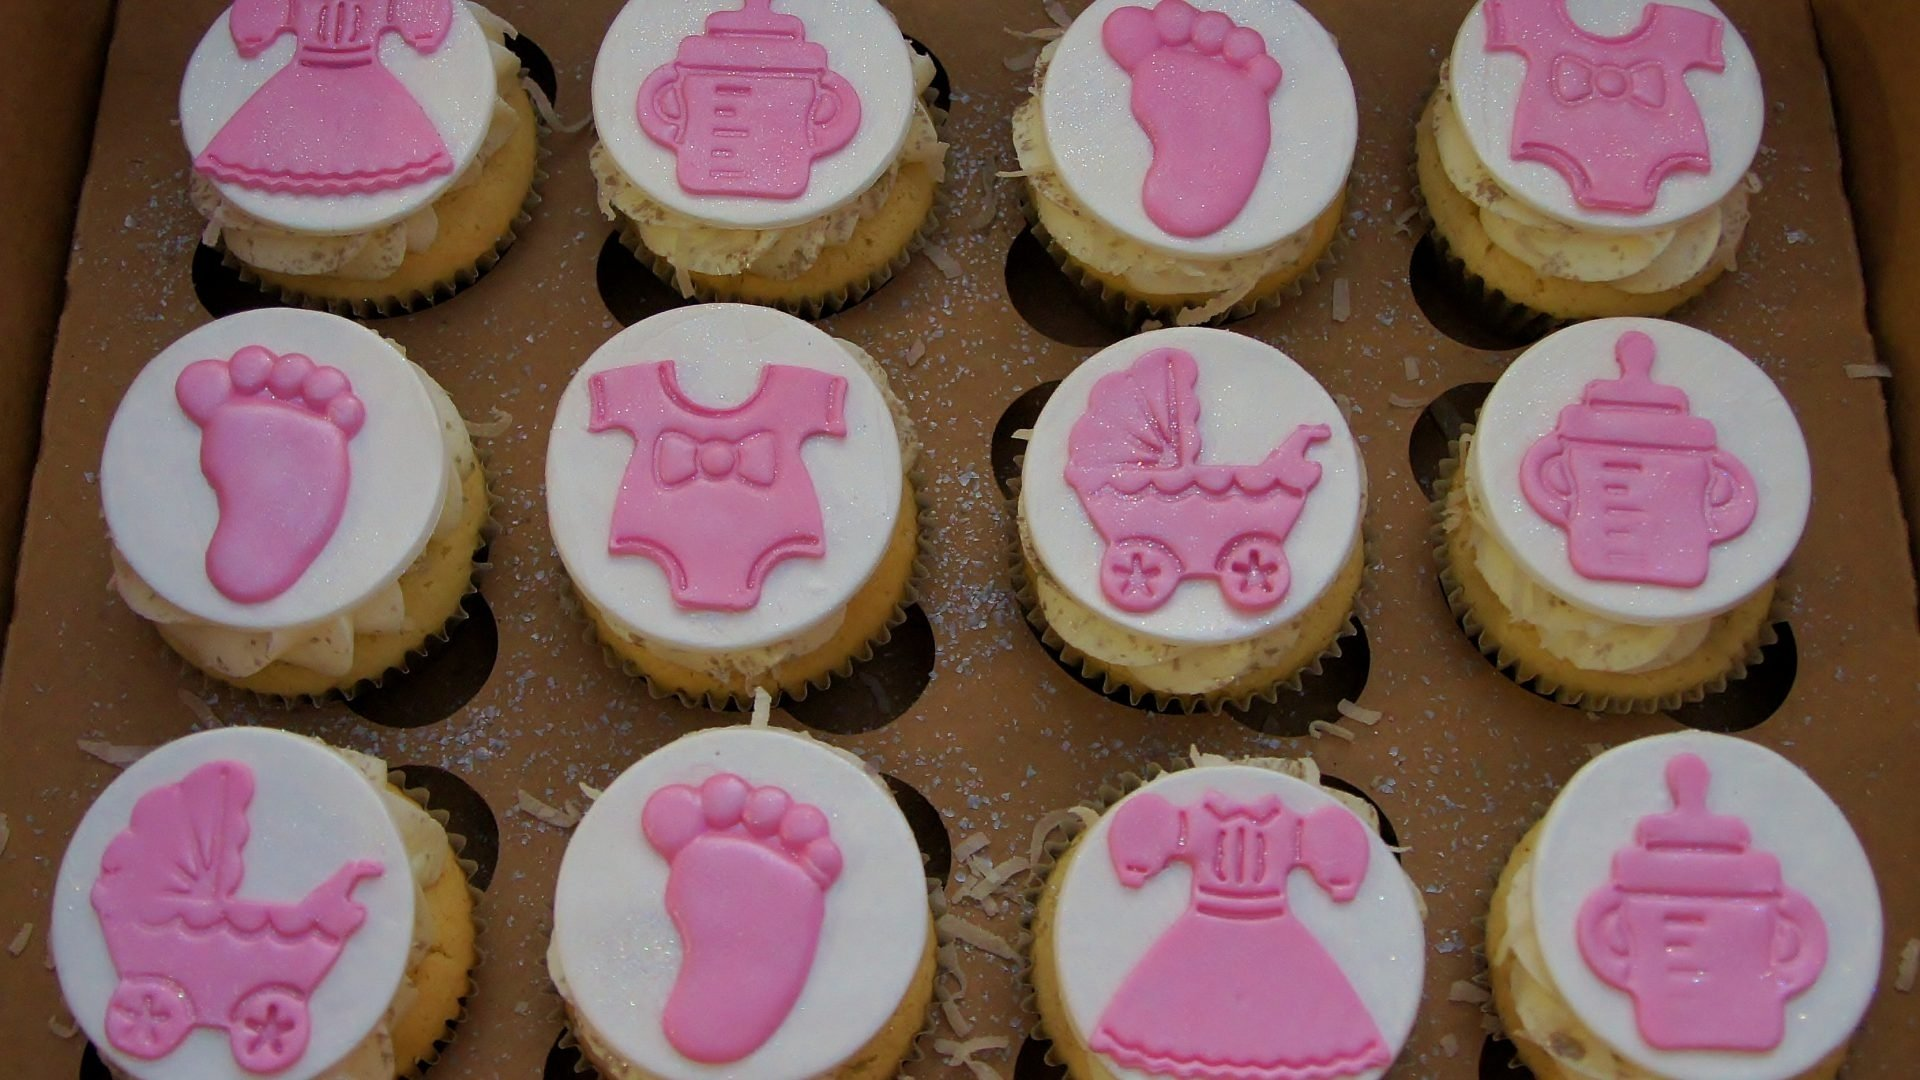 10 Famous Baby Shower Cupcake Decorating Ideas sheet cake decorating ideas baby shower pops cupcake decorations for 2021